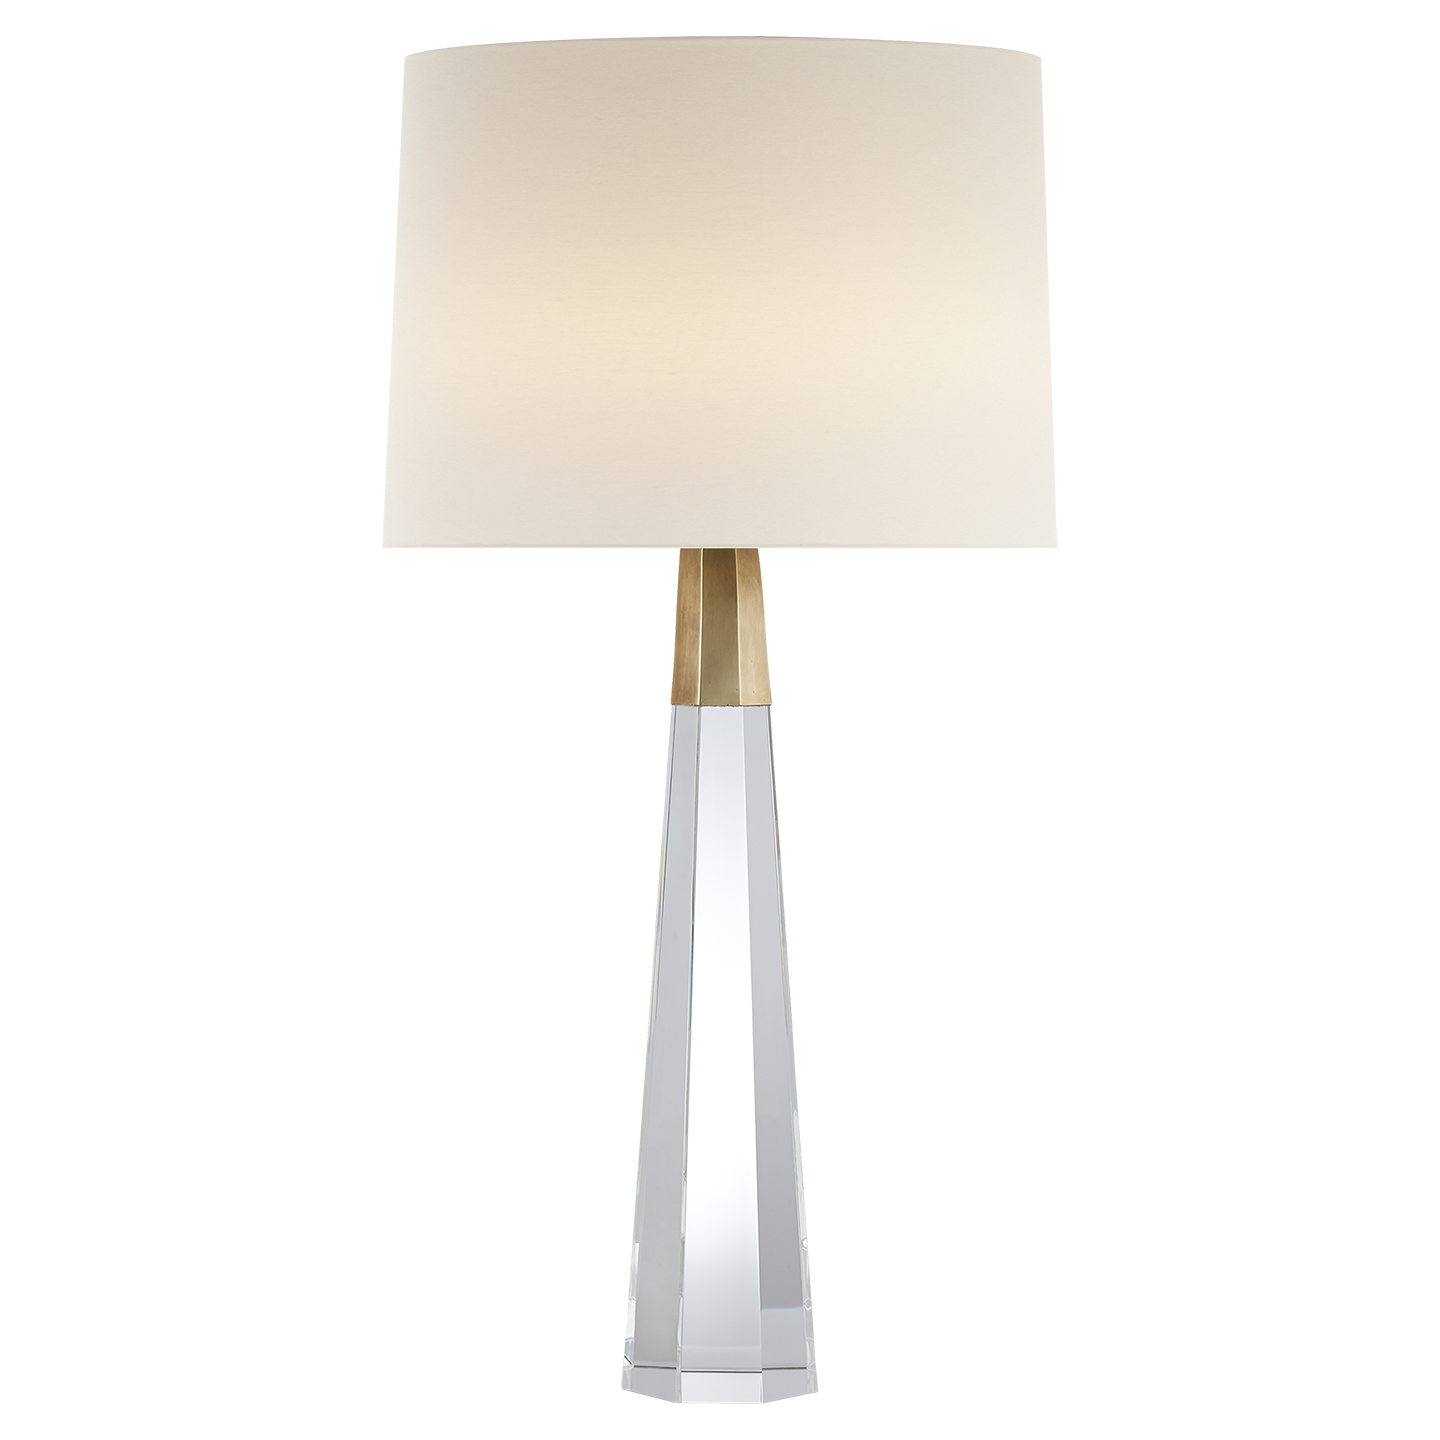 Captivating Visual Comfort ARN 3026CG/HAB L AERIN Traditional Olsen Table Lamp In  Crystal And Hand Rubbed Antique Brass With Linen Shade